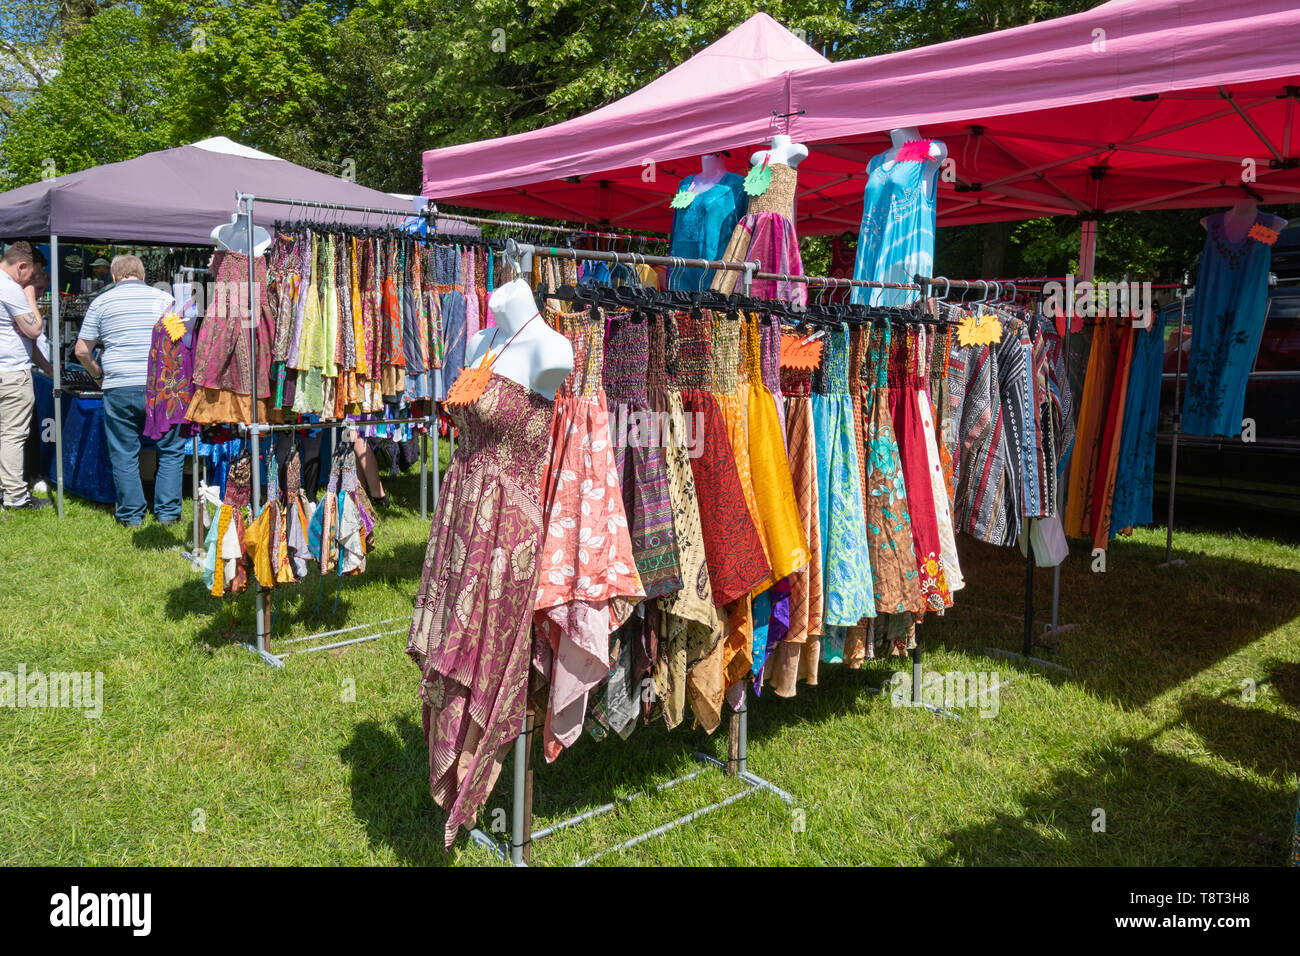 Colourful sun dresses (colourful summer dresses) on sale on a market stall at a show, UK - Stock Image